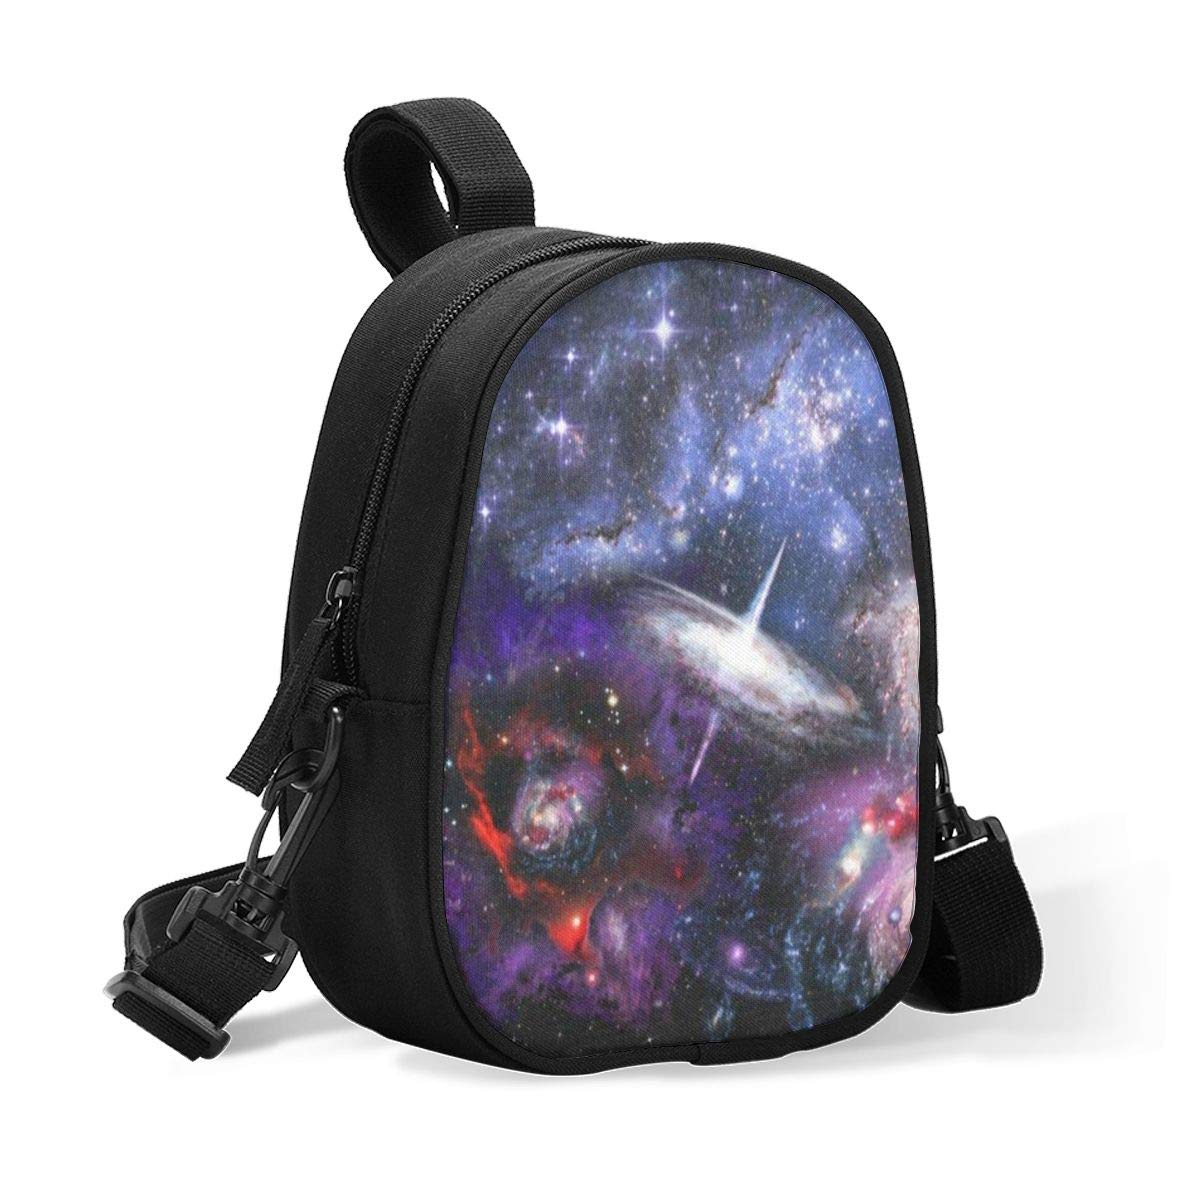 Insulated Baby Bottle Bag Outer Space Galaxy Planet Nebula Multi-Function Breastmilk Cooler Bag & Lunch Bag, Fit As Wine Carrier Or for Milk Bottles, for Nursing Mom Back to Work for 2 Large Bottles